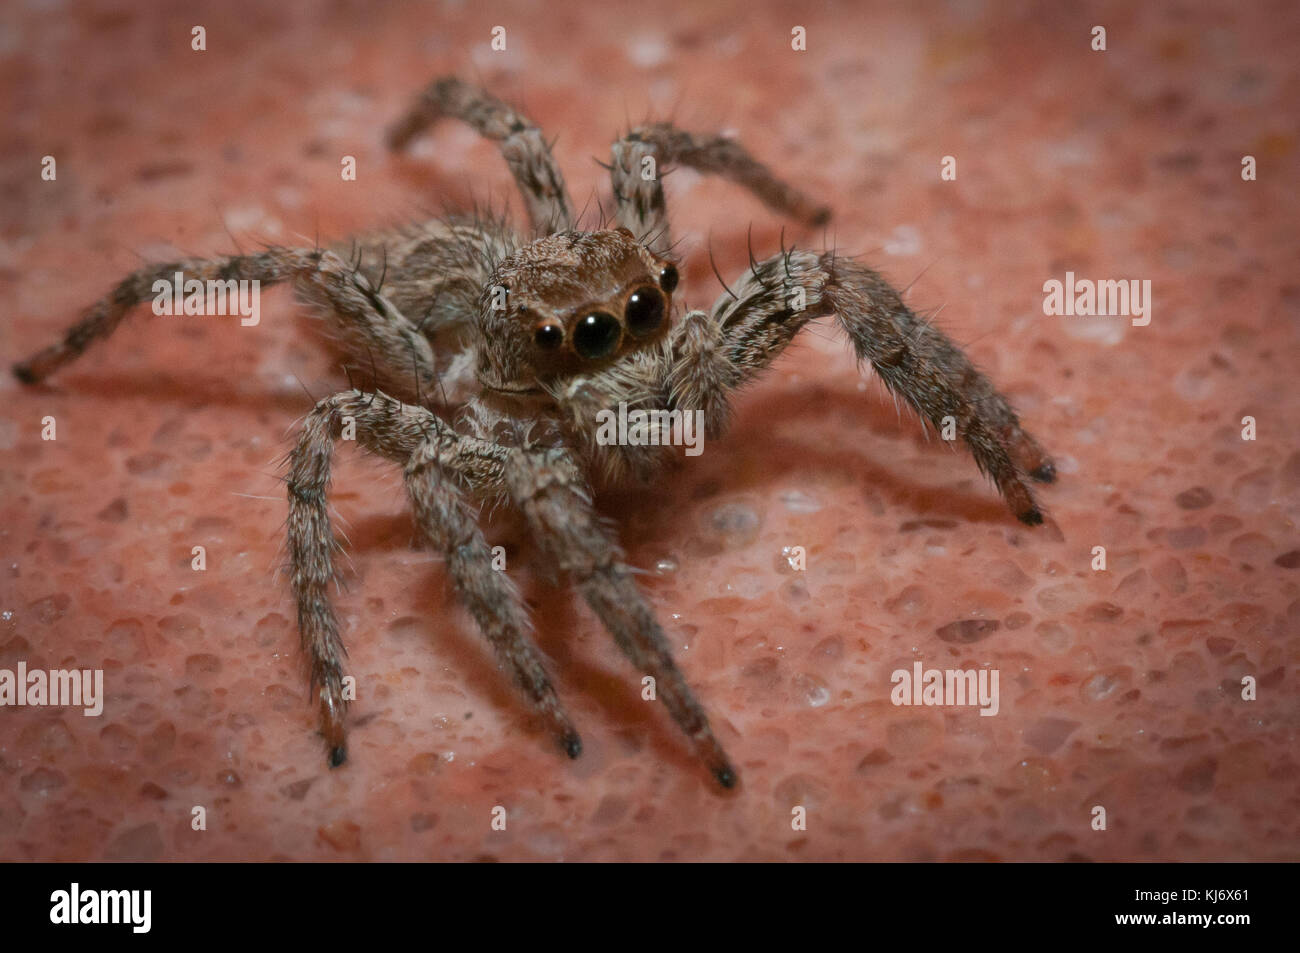 close up of a little spider - Stock Image